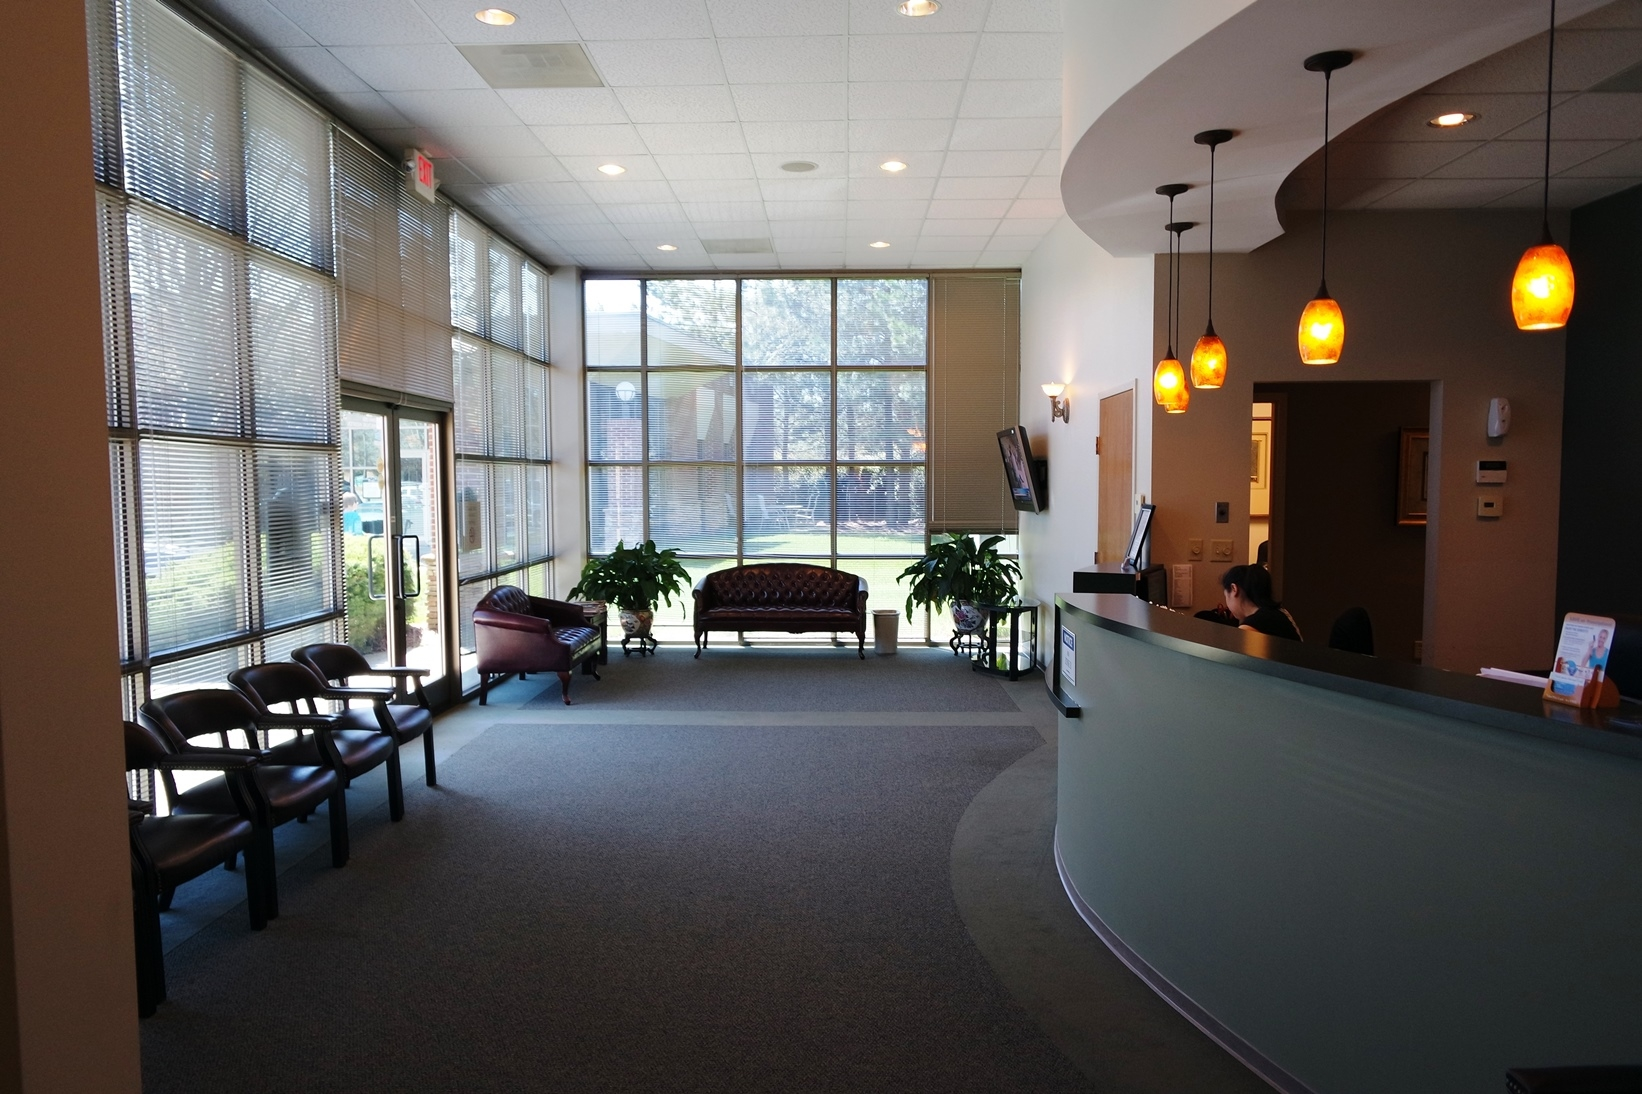 My Pain Clinic - Norcross image 1